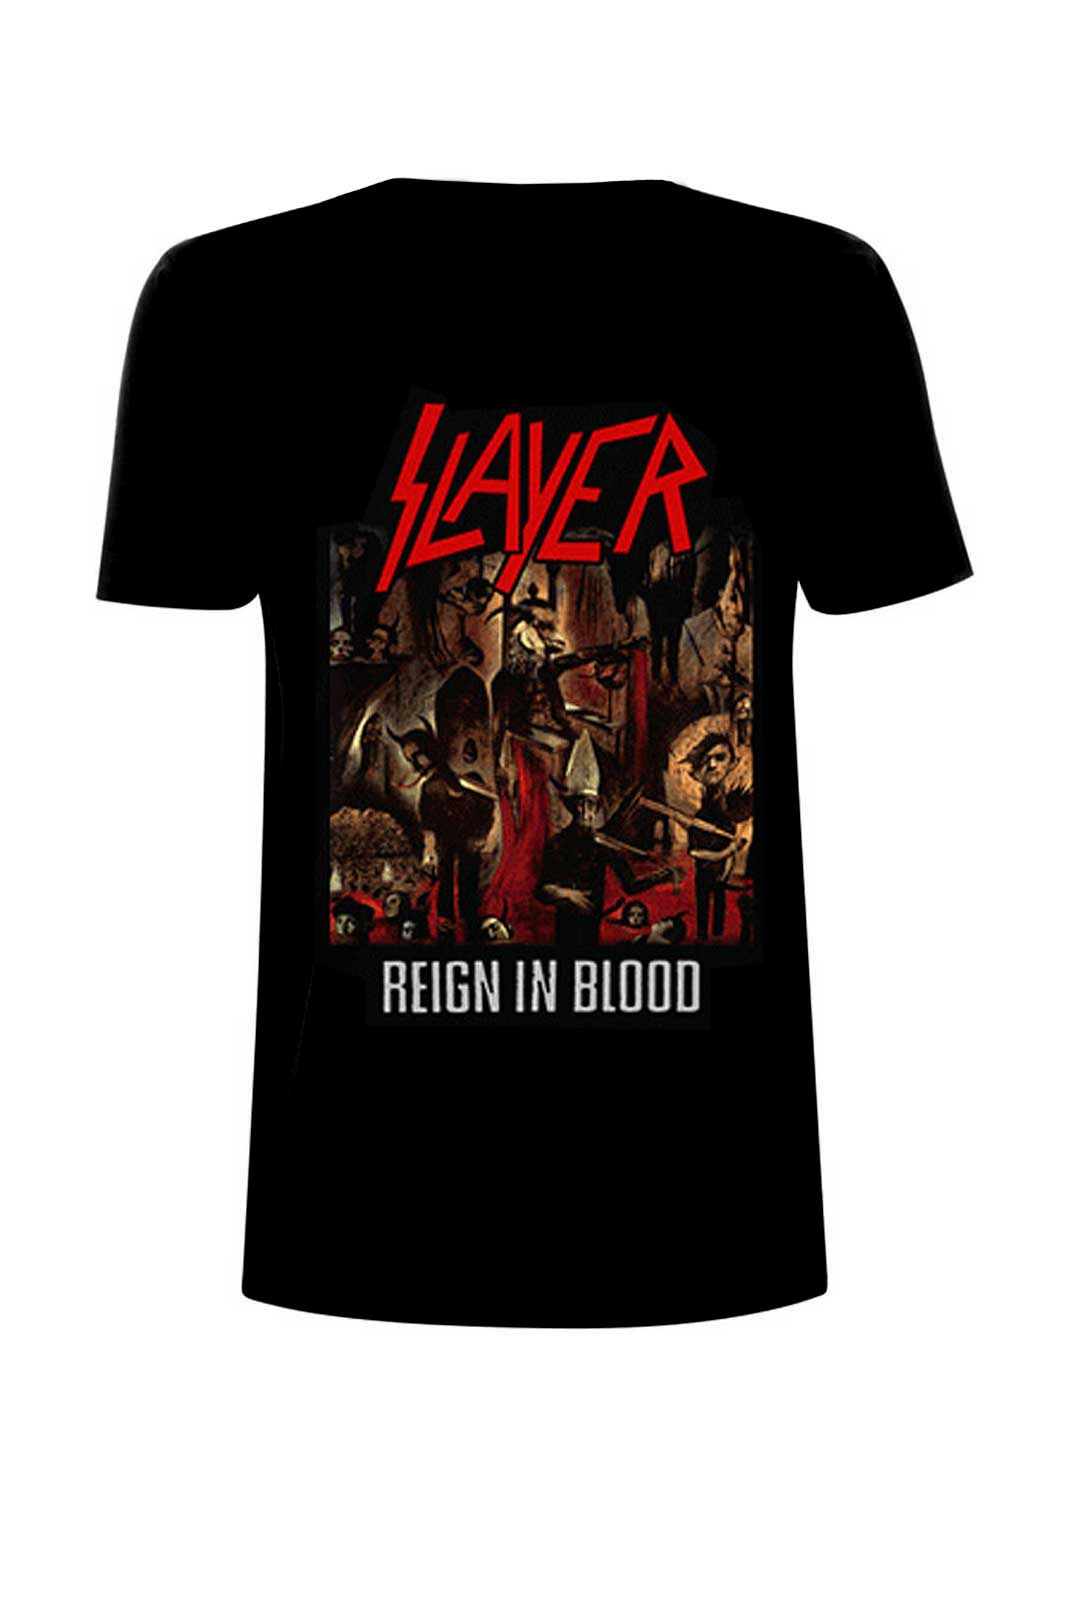 Tee Slayer Reign in blood